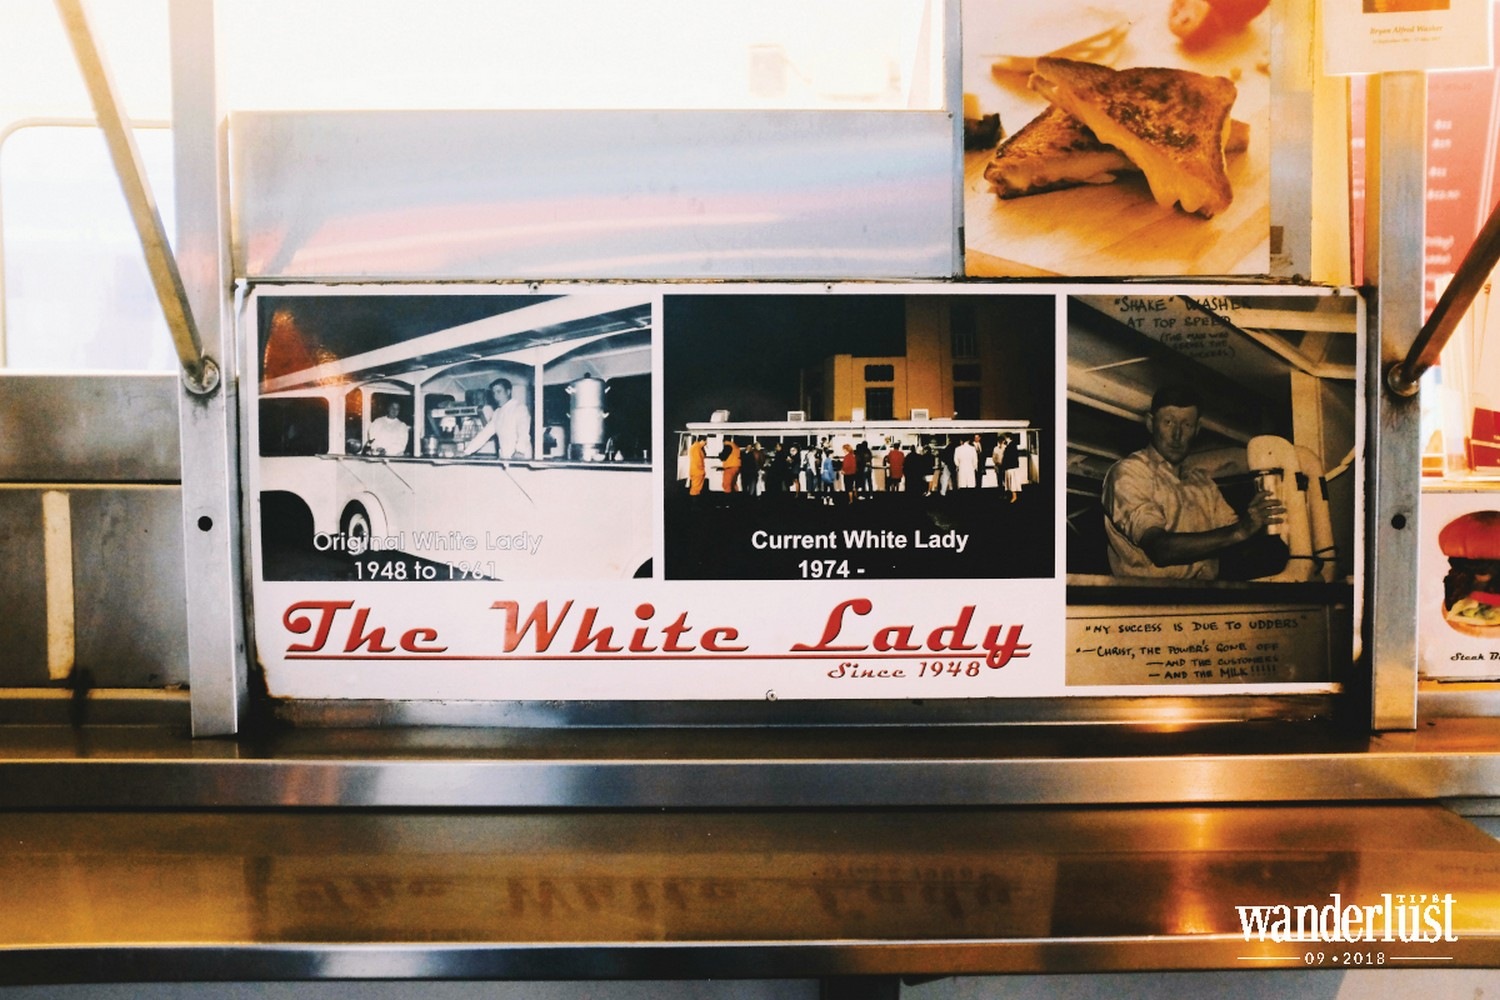 Wanderlust Tips | The White Lady, 70 years of street food history in the land of the kiwi